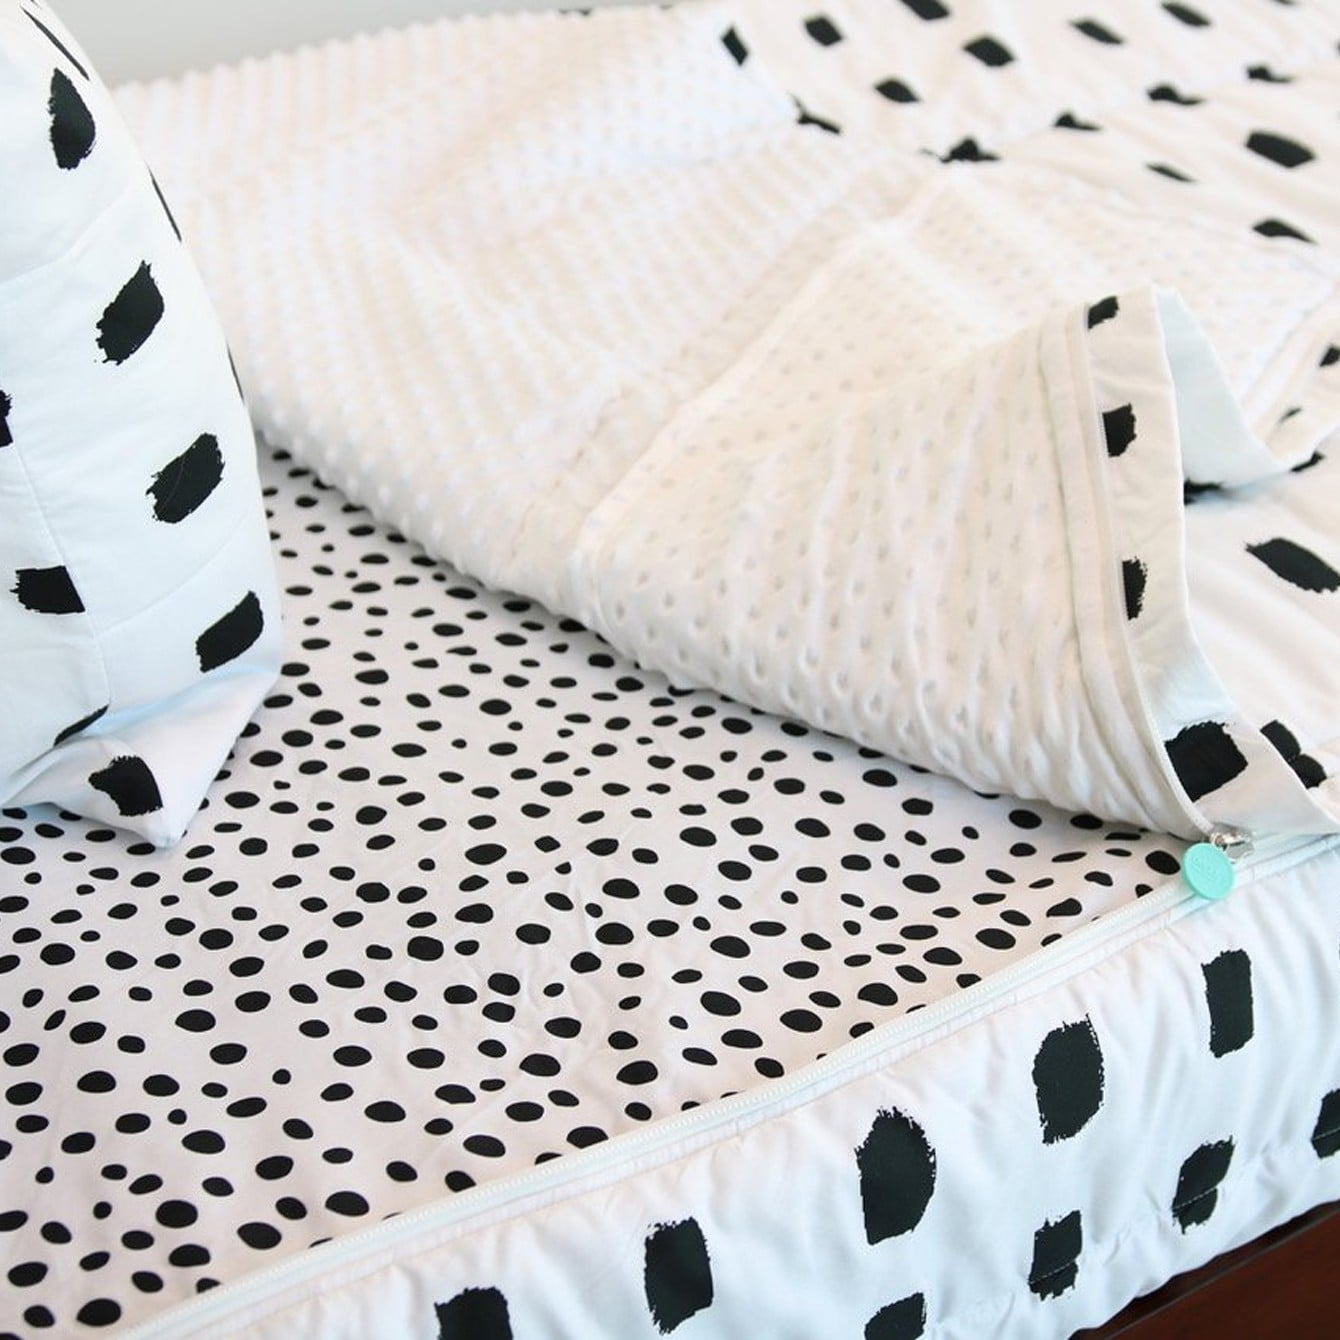 053237de8 Beddy s Zip-Up Bedding Sets For Kids and Adults